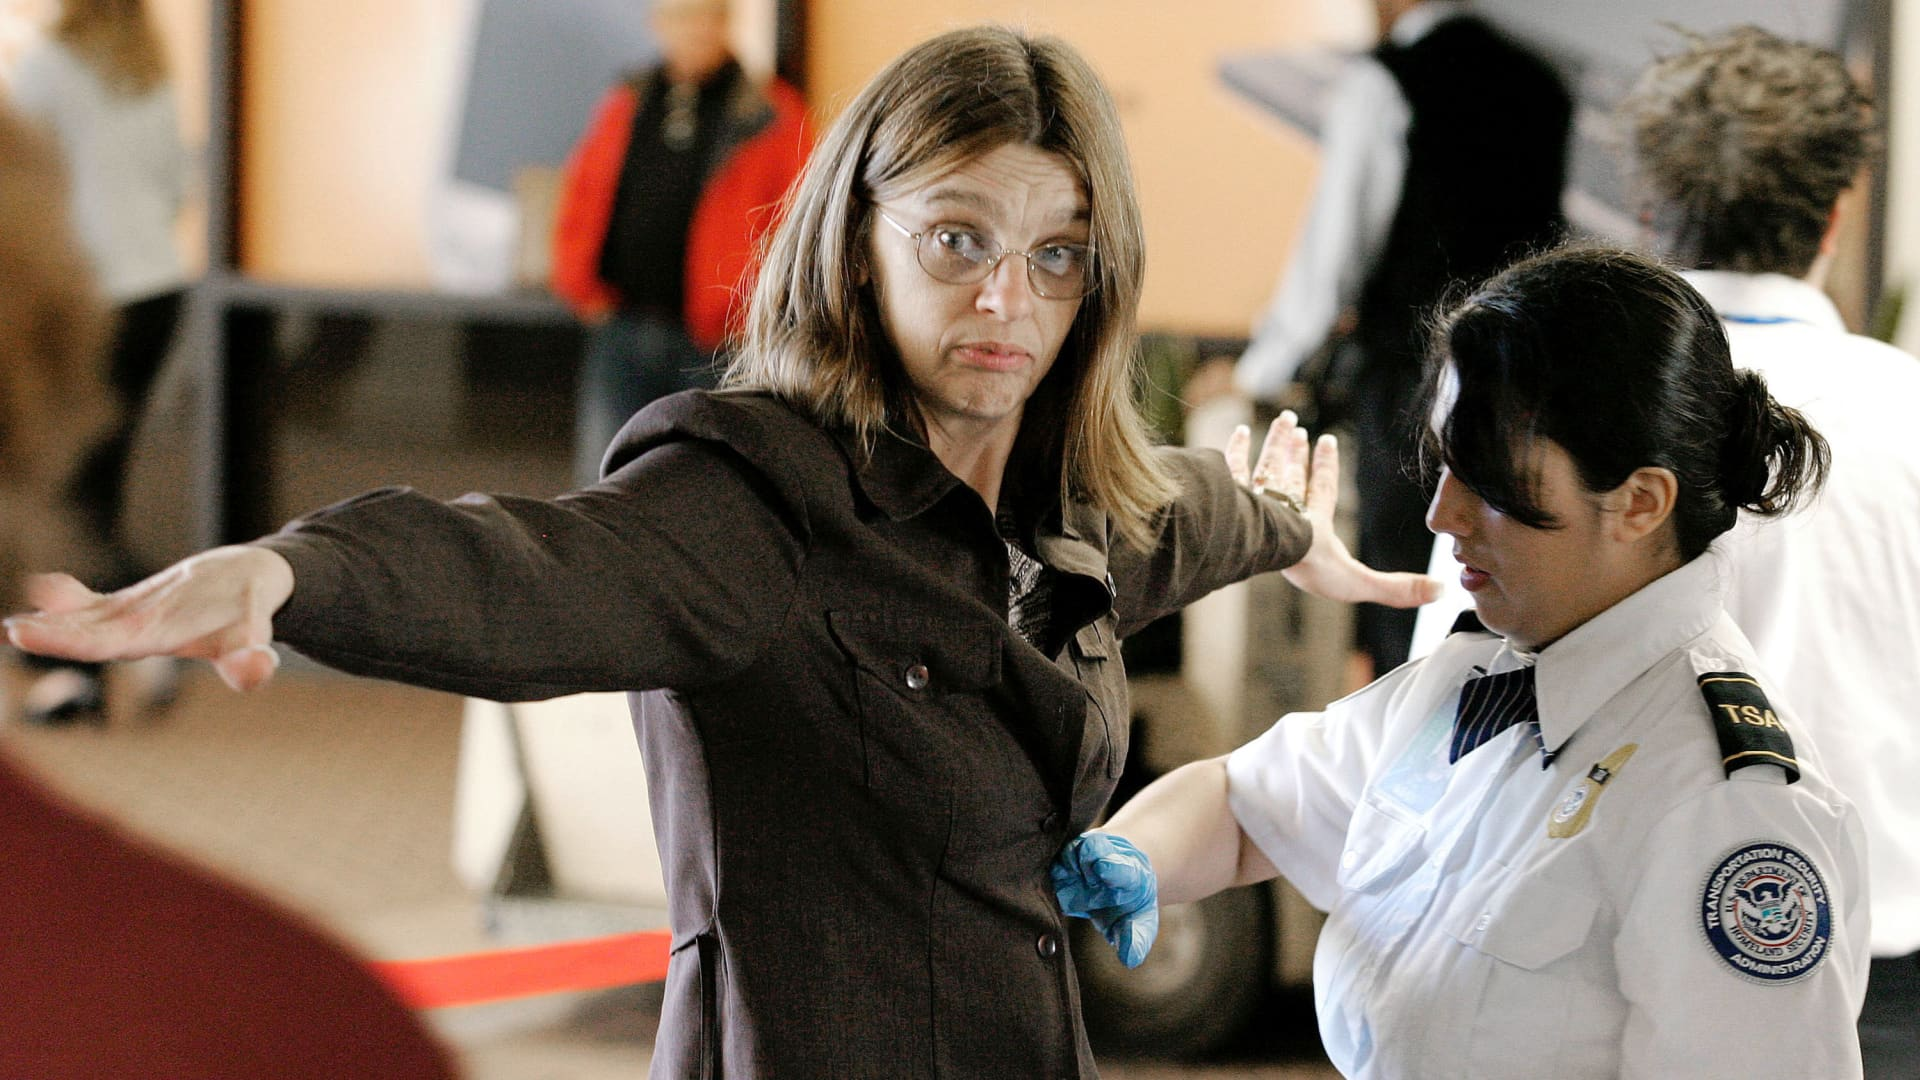 A Transportation Security Administration agent performs a pat-down check on an airline passenger at a security checkpoint in terminal four at Phoenix Sky Harbor International Airport December 10, 2004 in Phoenix, Arizona.